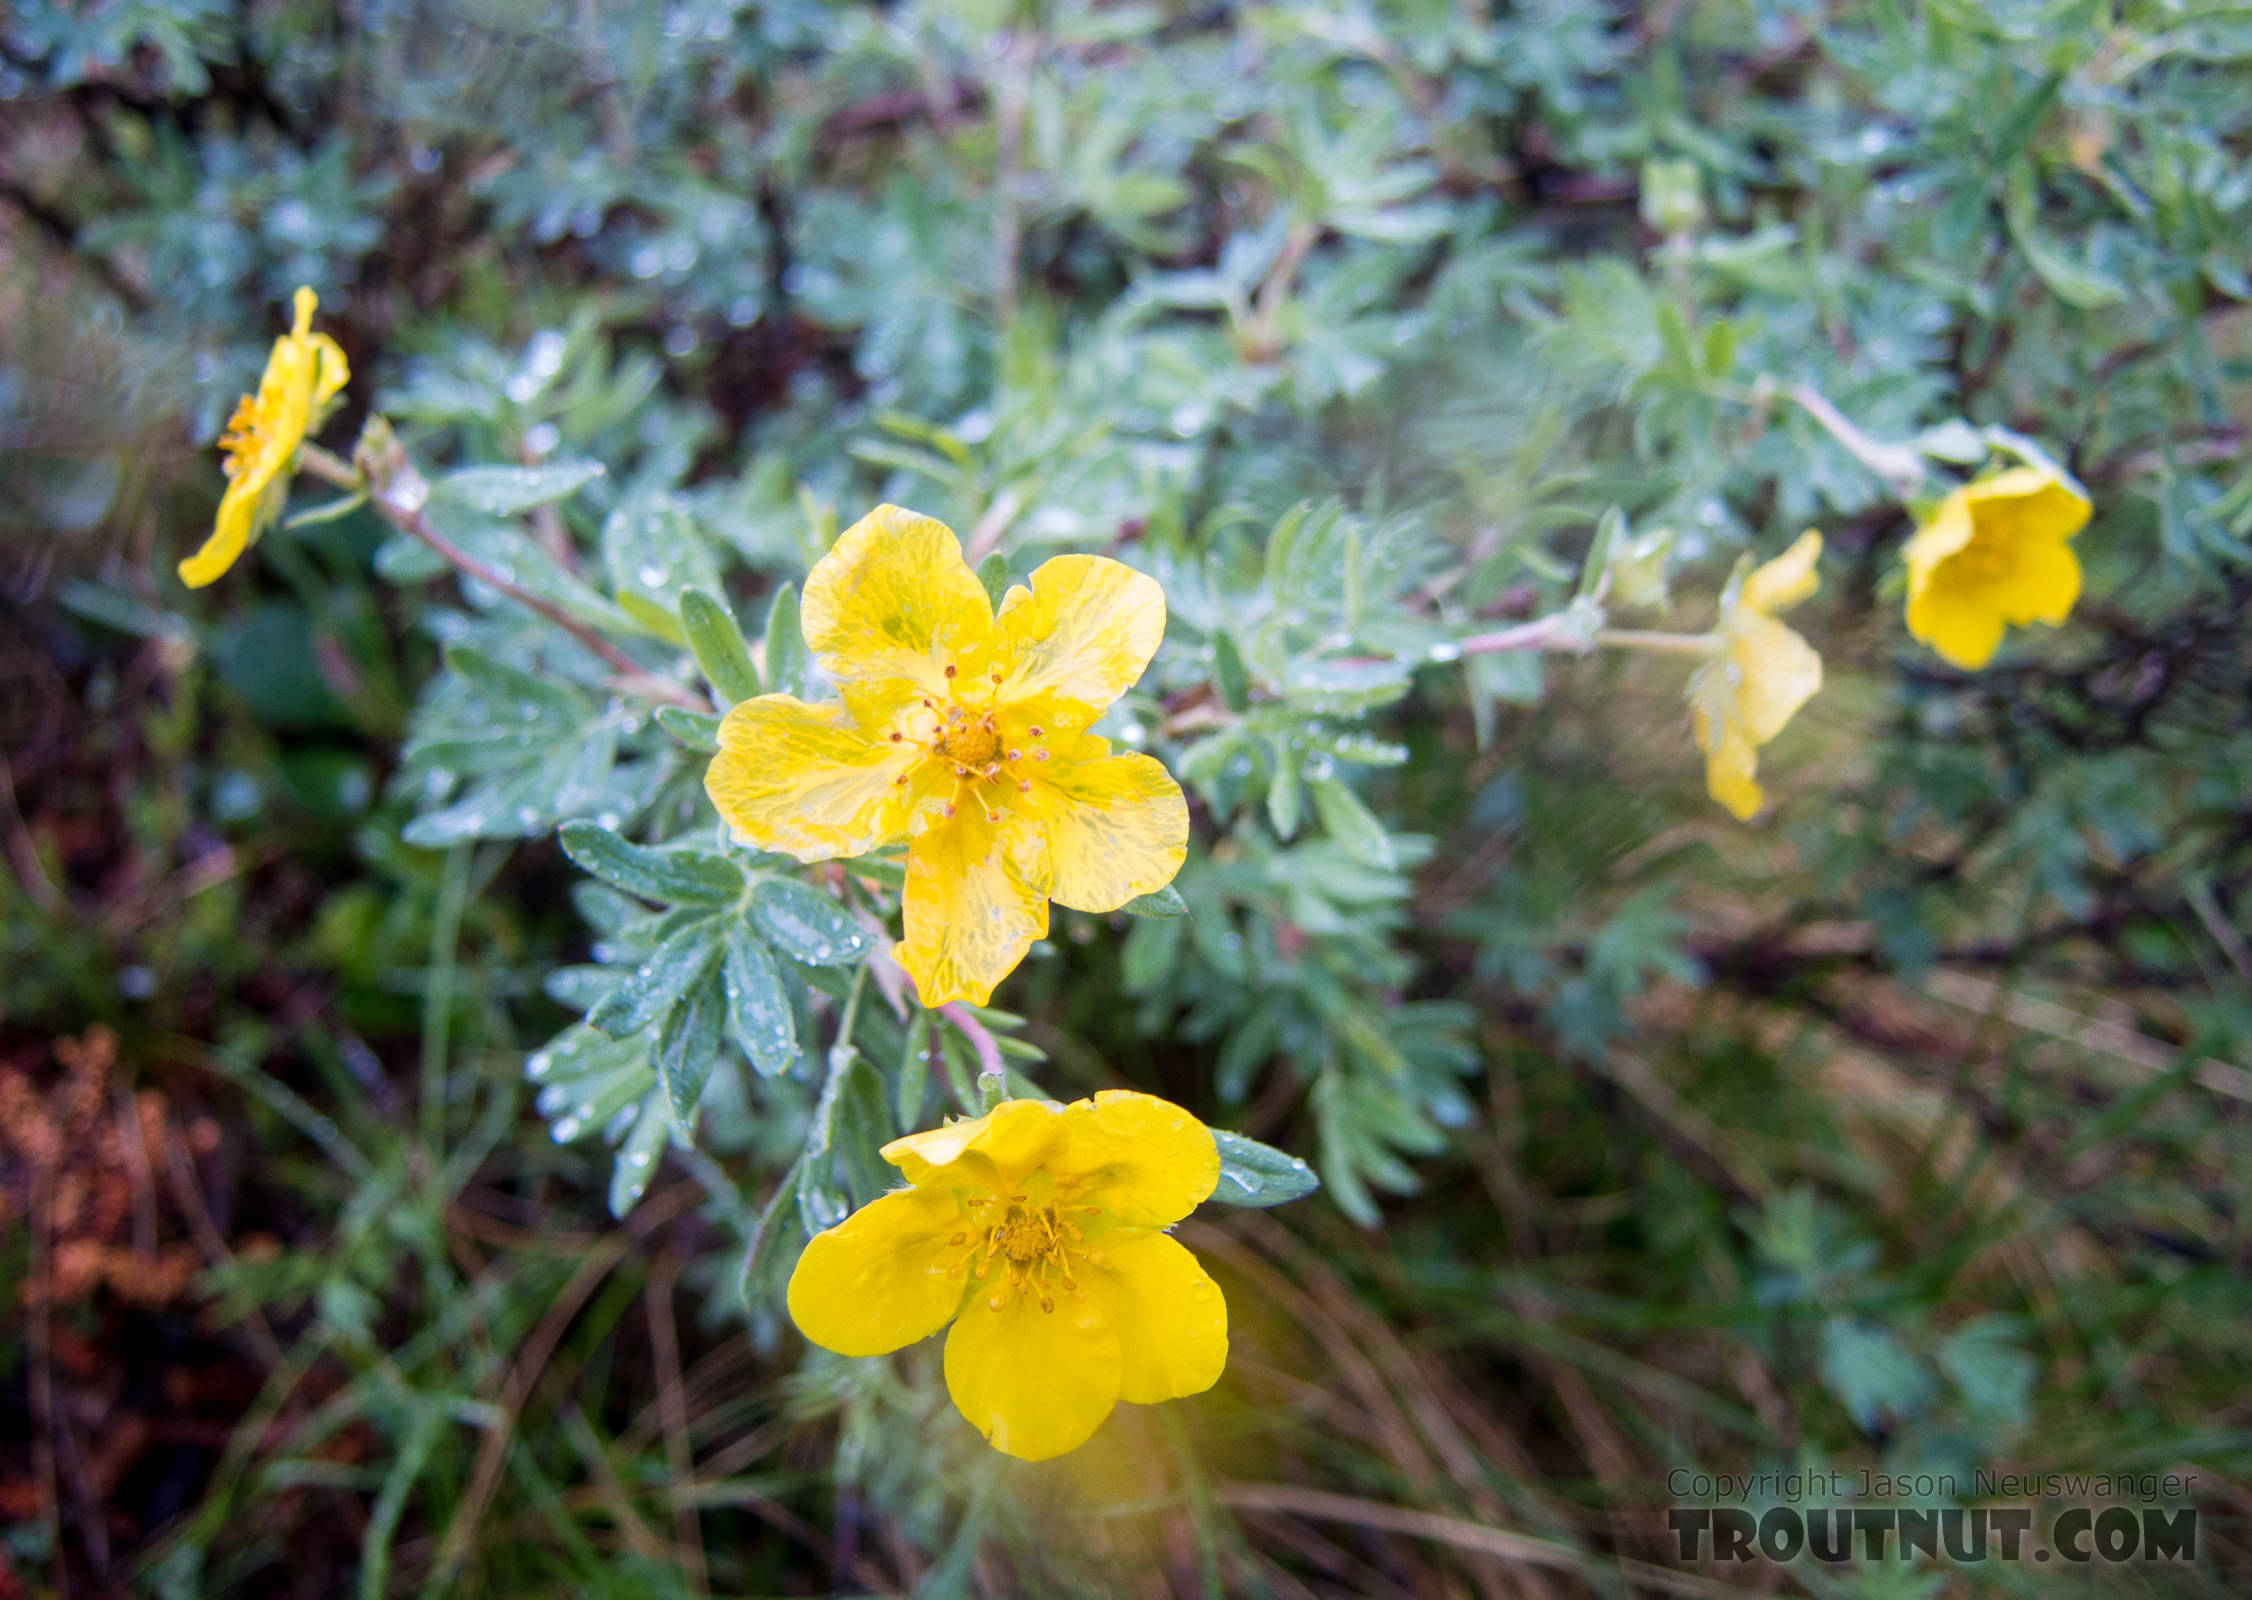 Tundra rose (Potentilla fruiticosa) From Clearwater Mountains in Alaska.